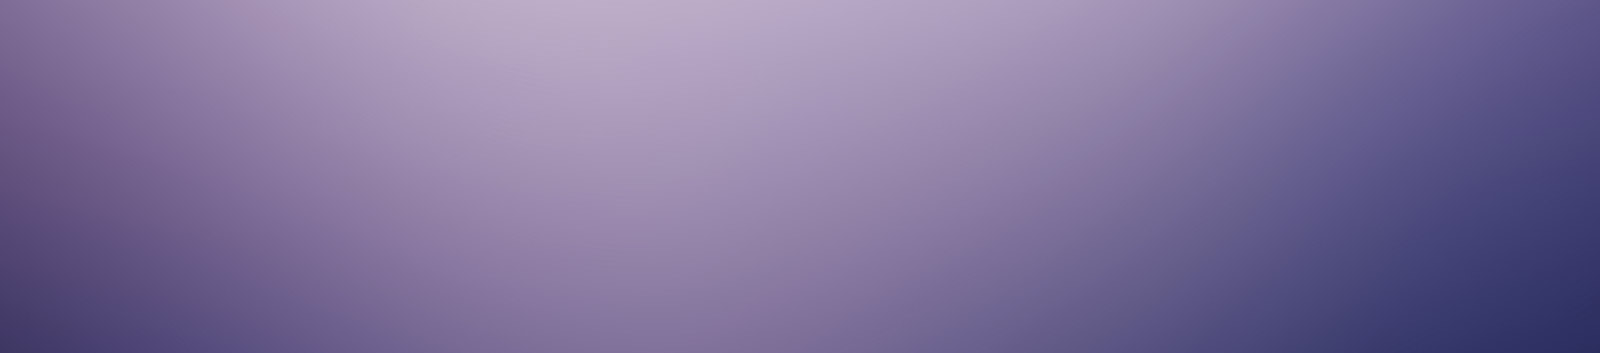 light purple gradient background banner